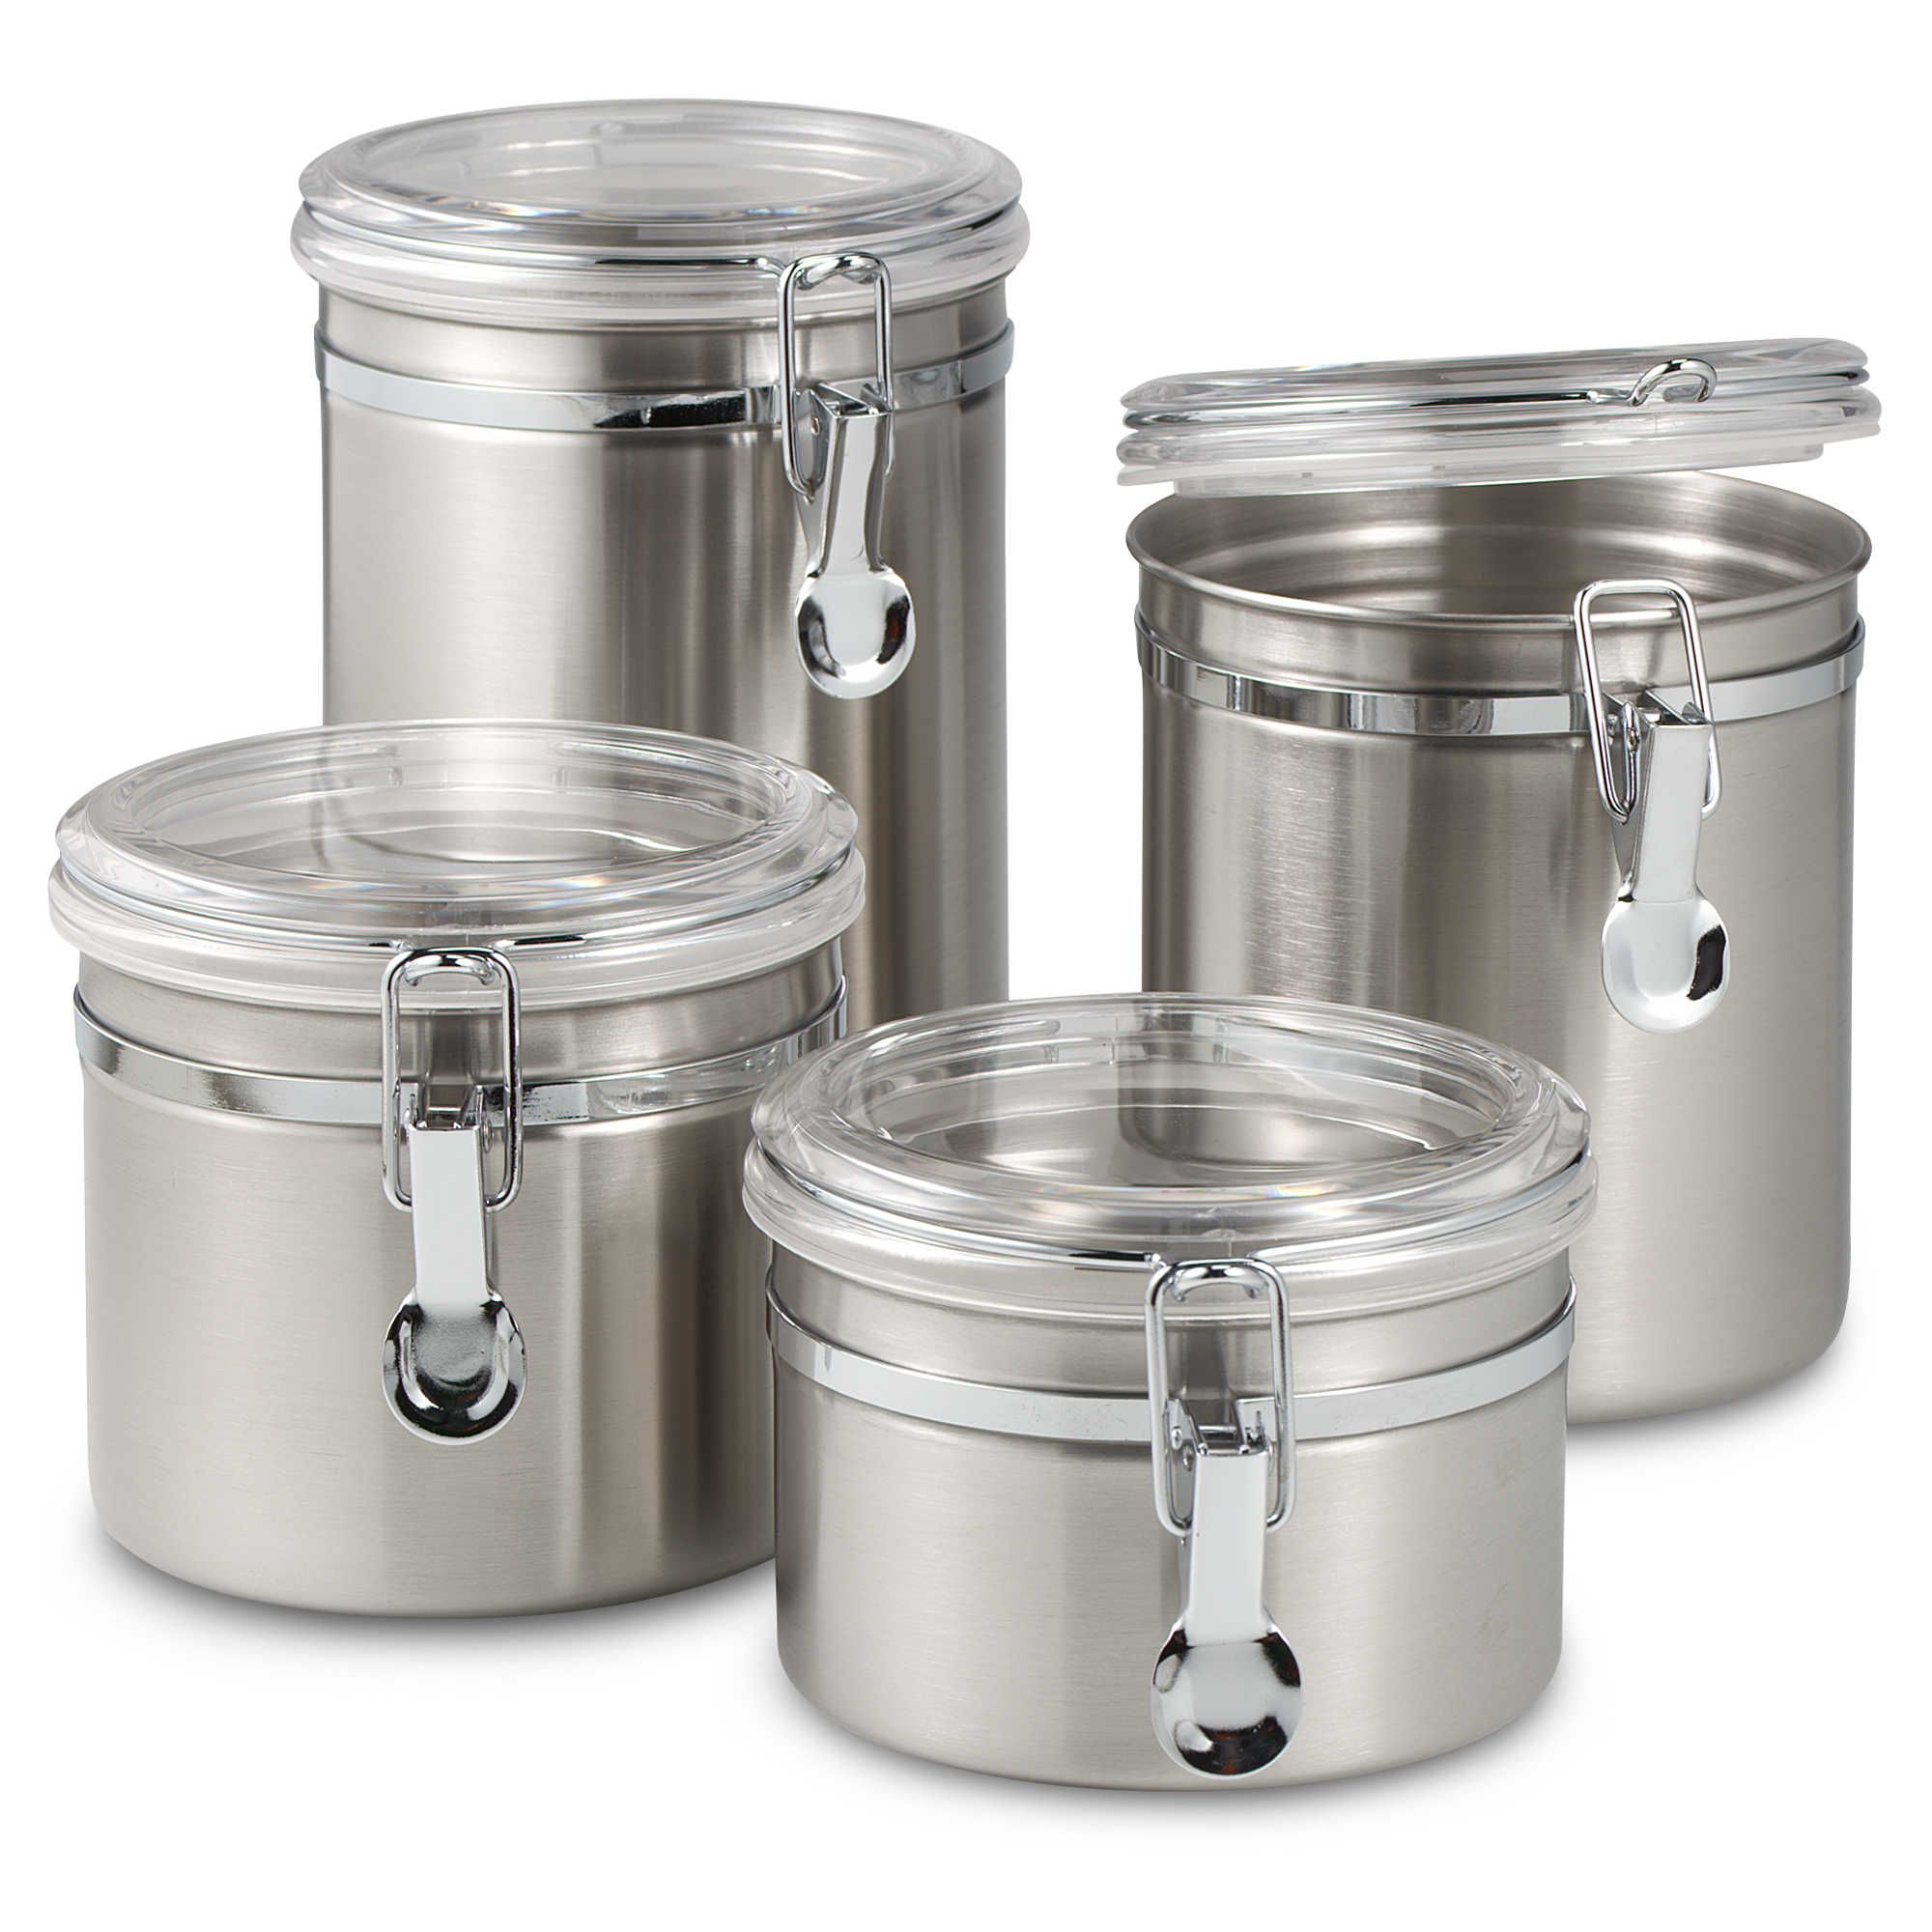 Stainless steel storage containers for kitchen - Oggi Airtight Stainless Steel Canisters With Acrylic Tops Set Of 4